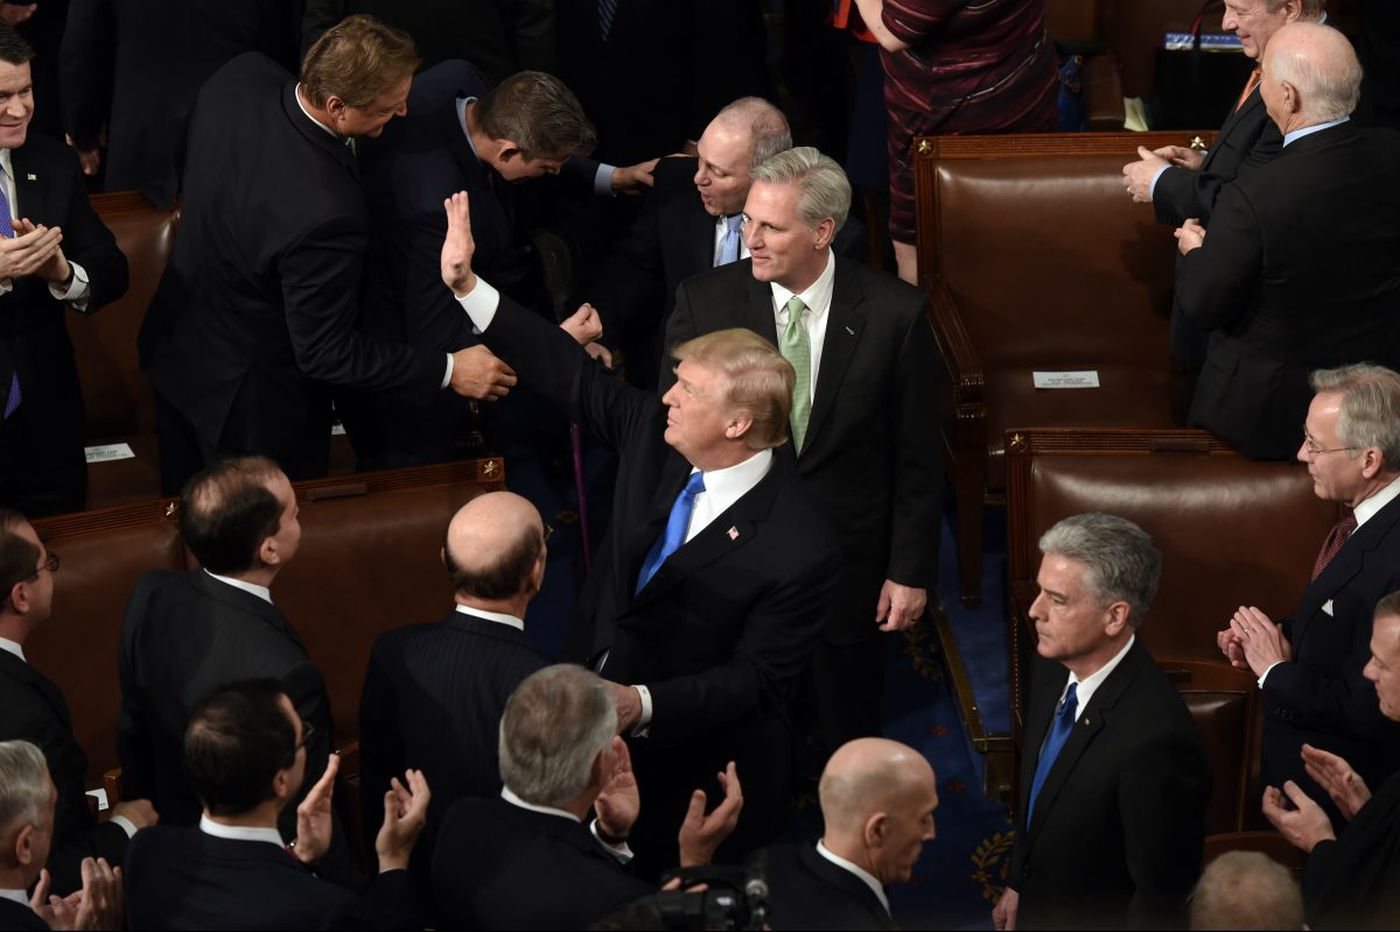 President Trump's State of the Union Address: Eight takeaways